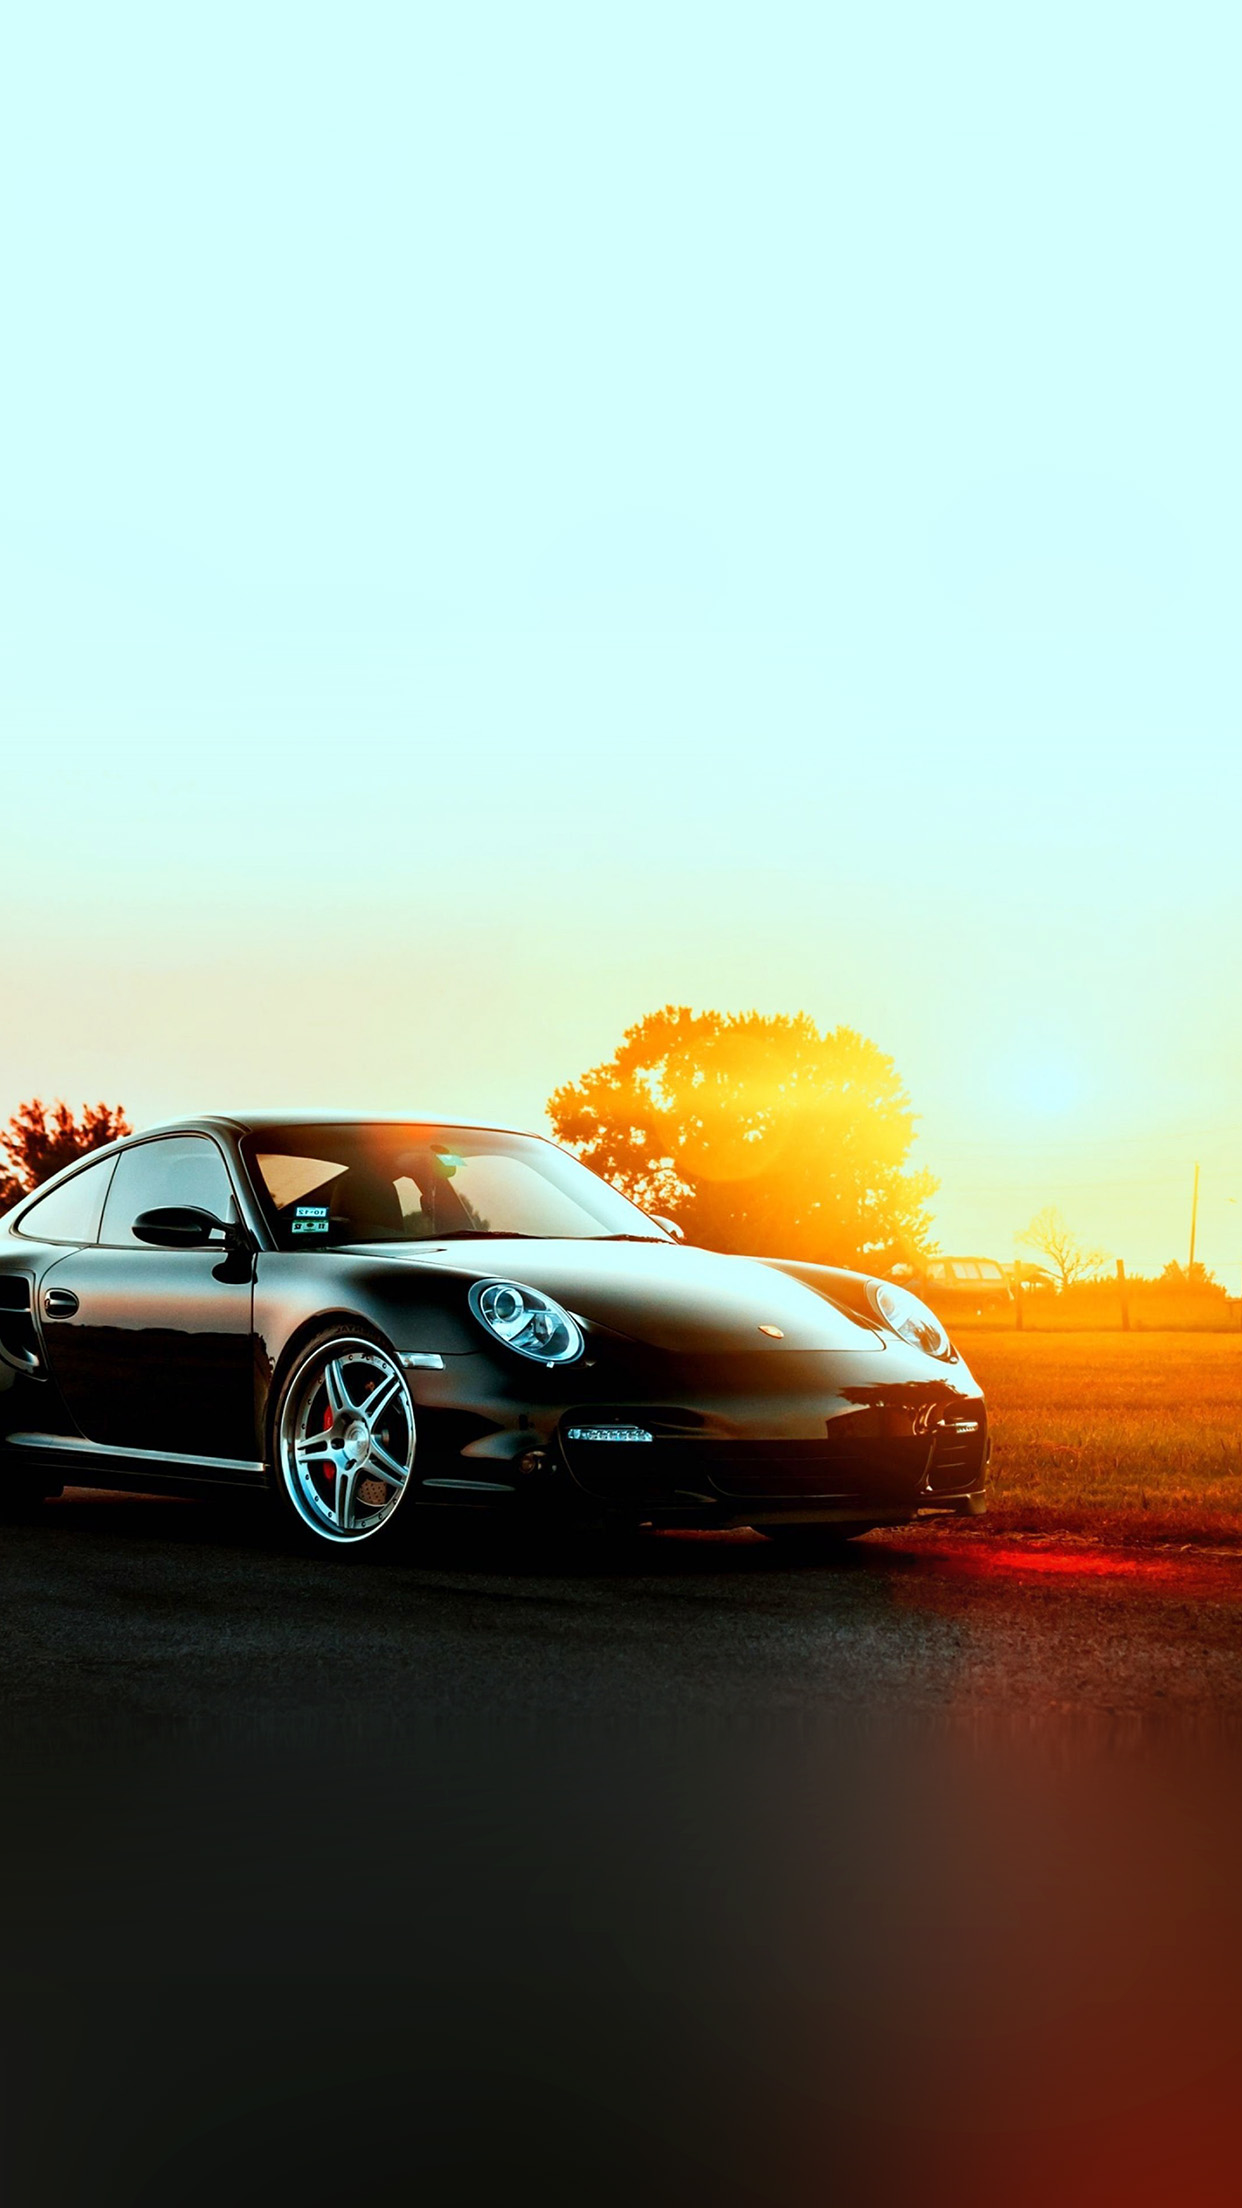 Iphone6papers Co Iphone 6 Wallpaper Ar43 Porche Art Sunset